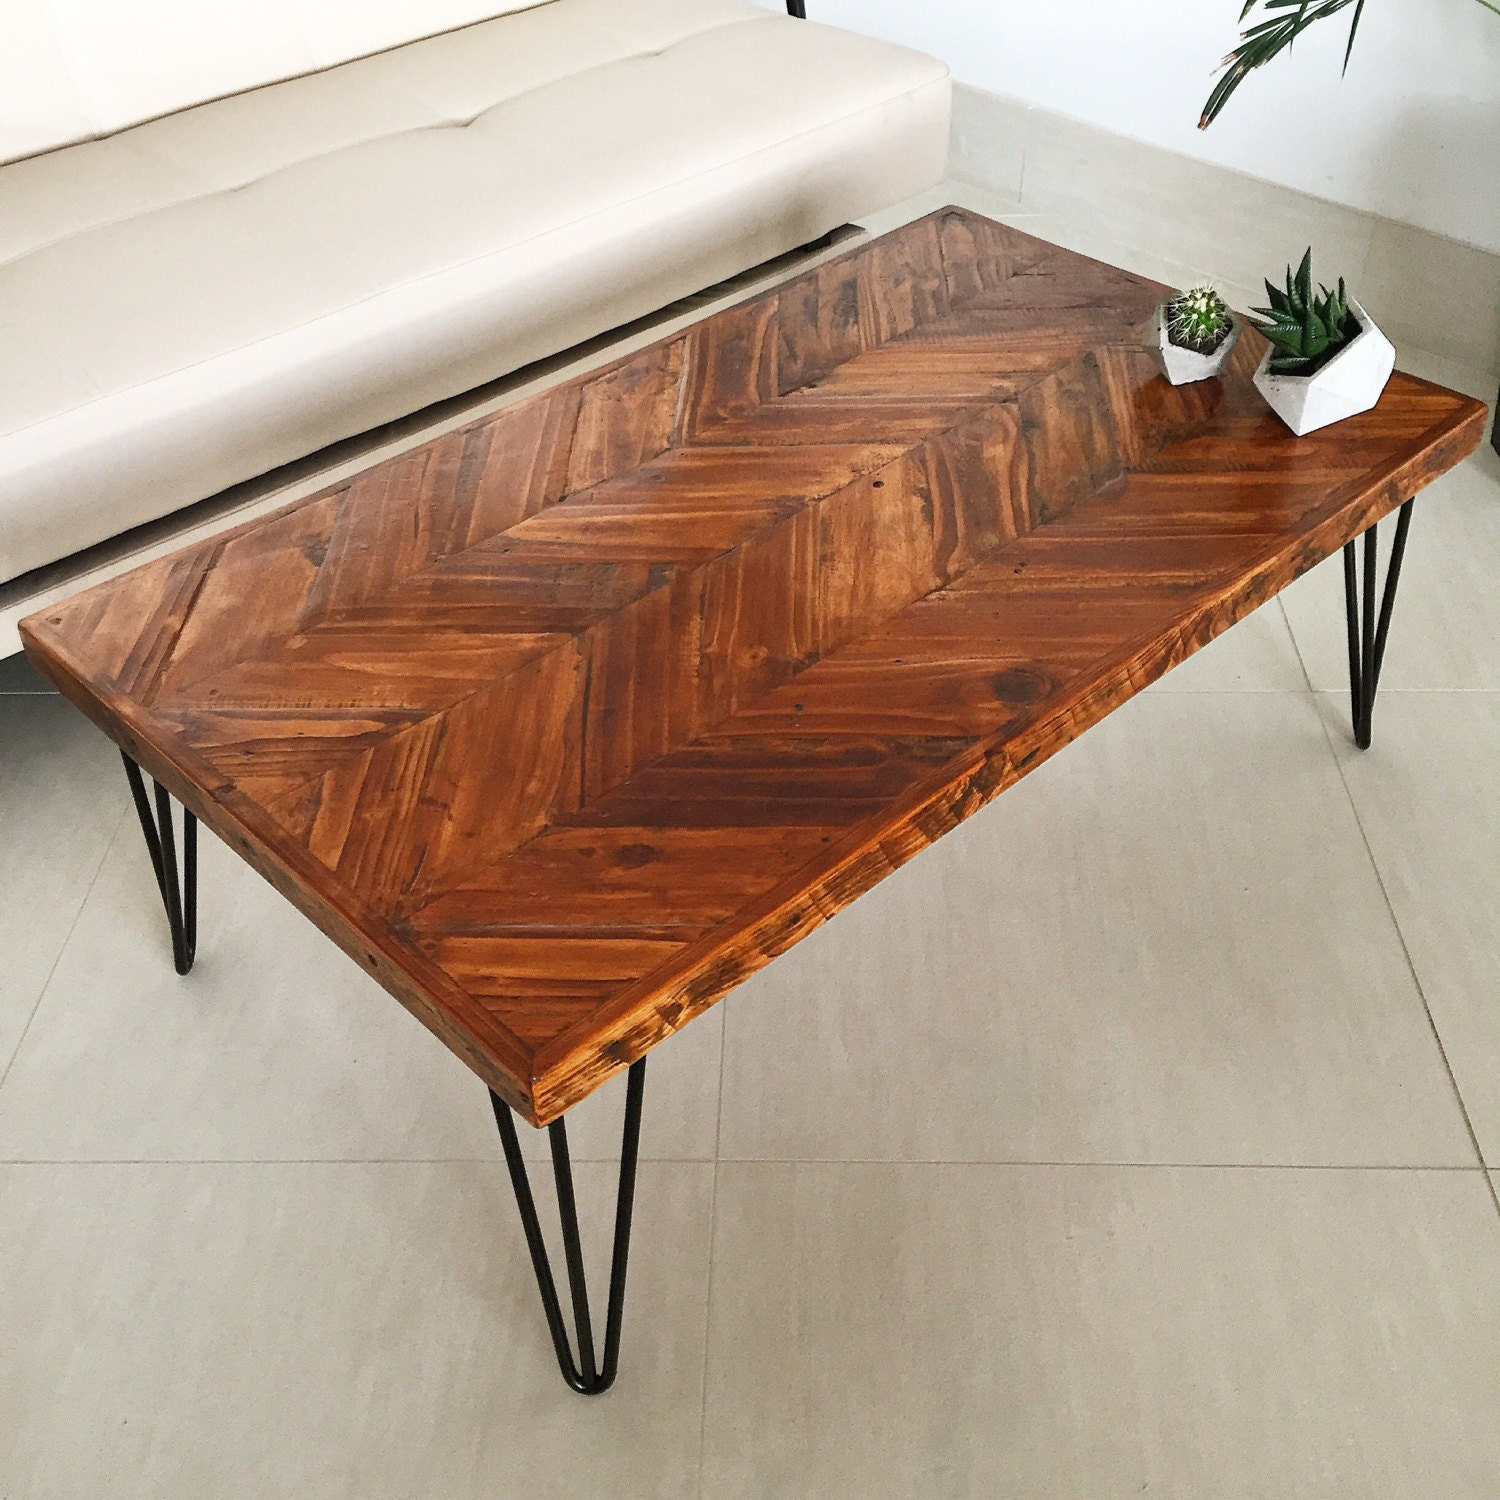 Reclaimed Wood Chevron Coffee Table  Chevron Coffee Table  Chevron Table  Reclaimed Wood Coffee Table  Industrial Coffee Table